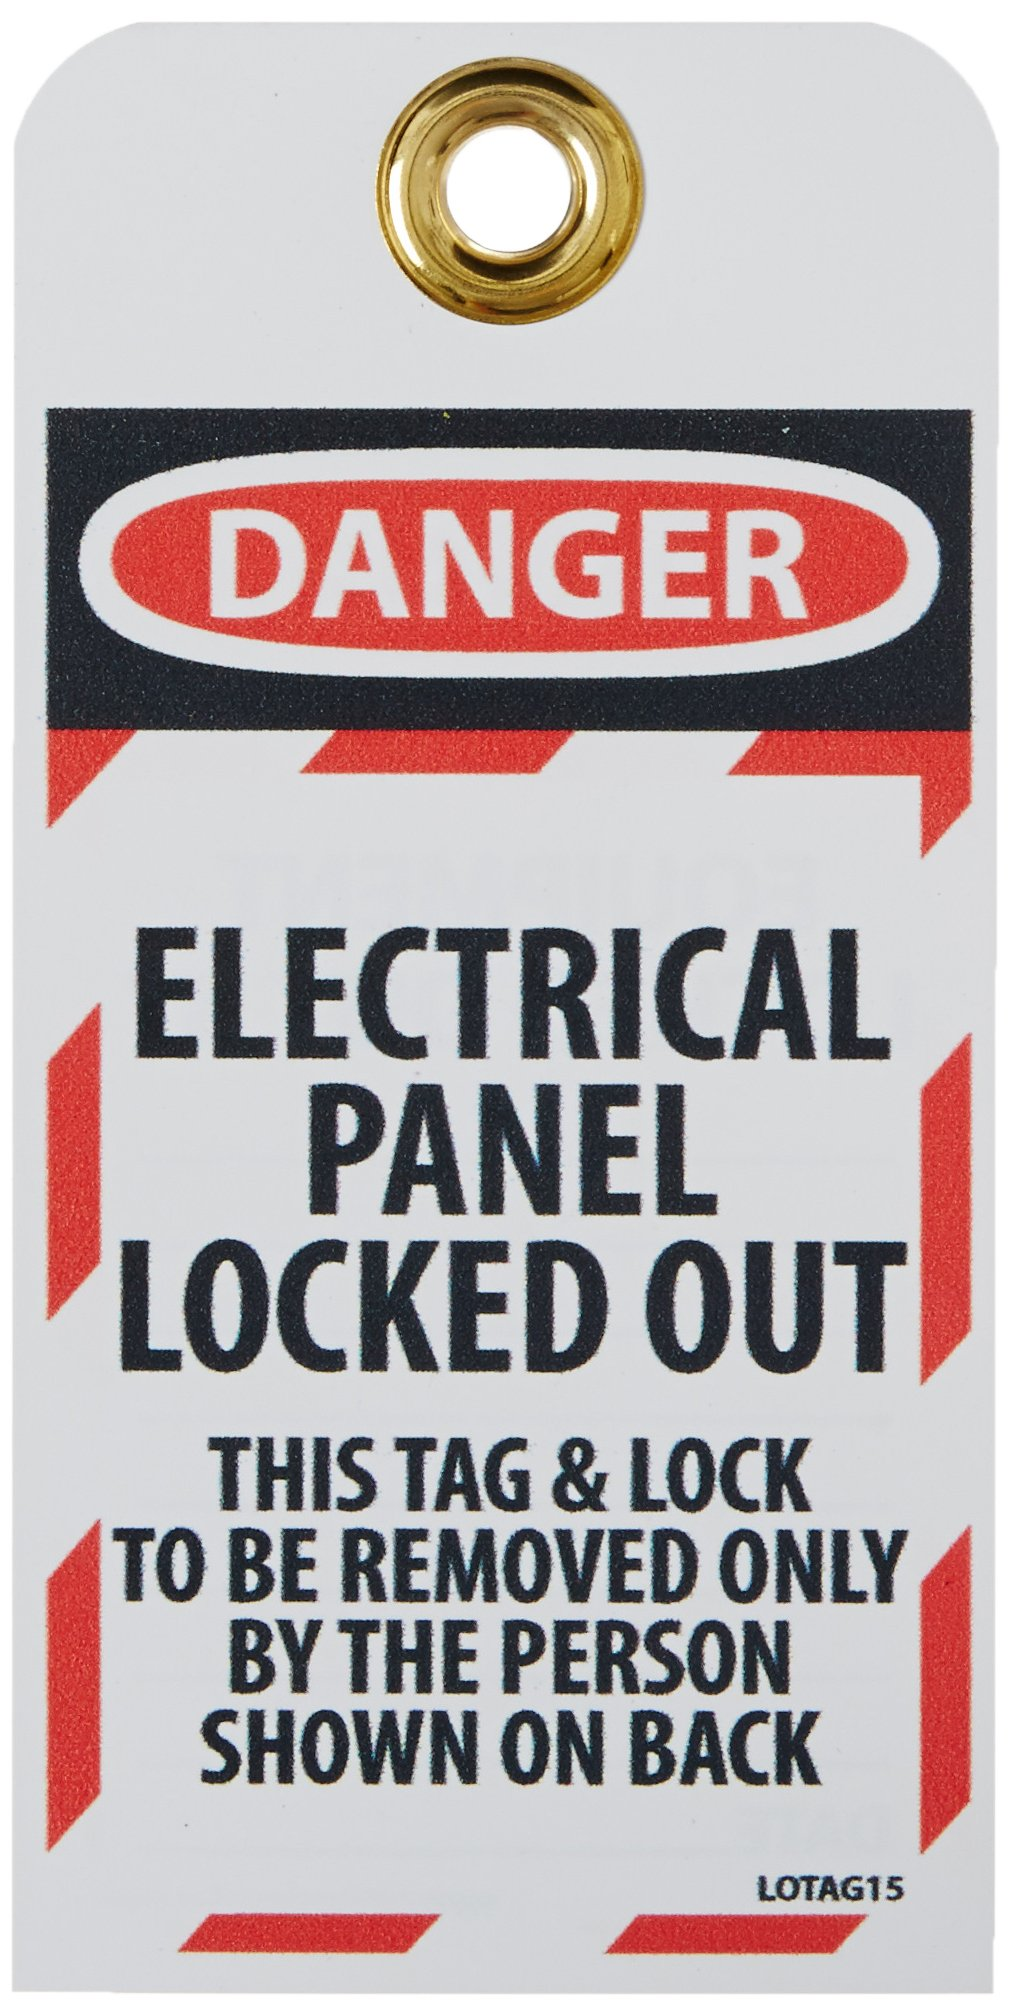 NMC LOTAG15''DANGER - ELECTRICAL PANEL LOCKED-OUT'' Lockout Tag, Unrippable Vinyl, 3'' Length, 6'' Height, Black/Red on White (Pack of 10) by NMC